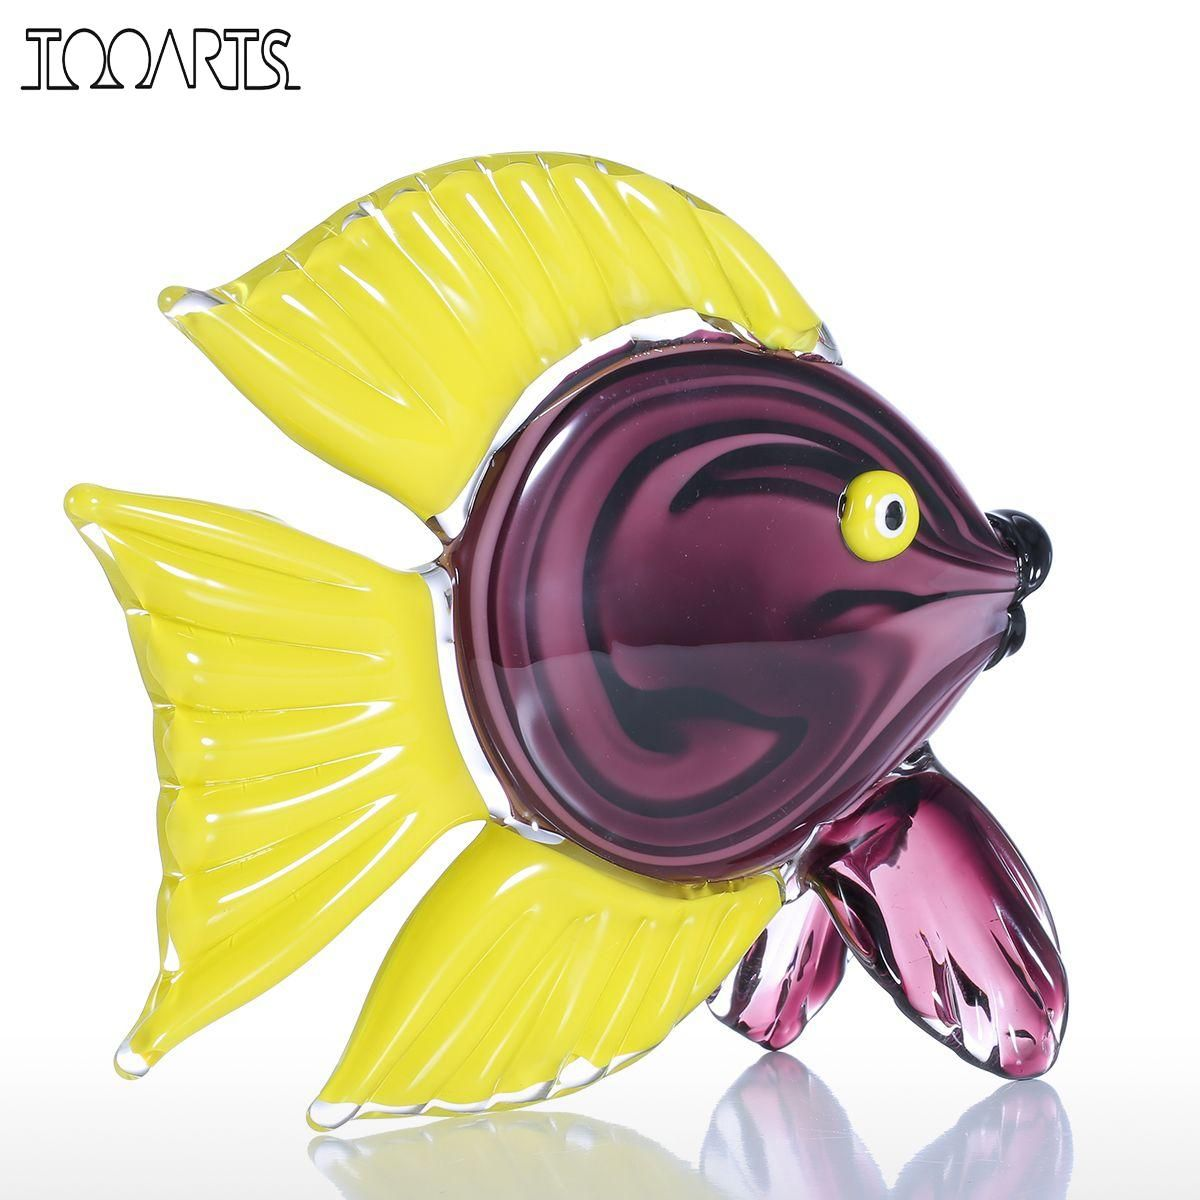 Tooarts Yellow Tropical Fish Glass Figurine Home Decor Animal Figurine Ornament Favor Gift Glass Craft For Home Office